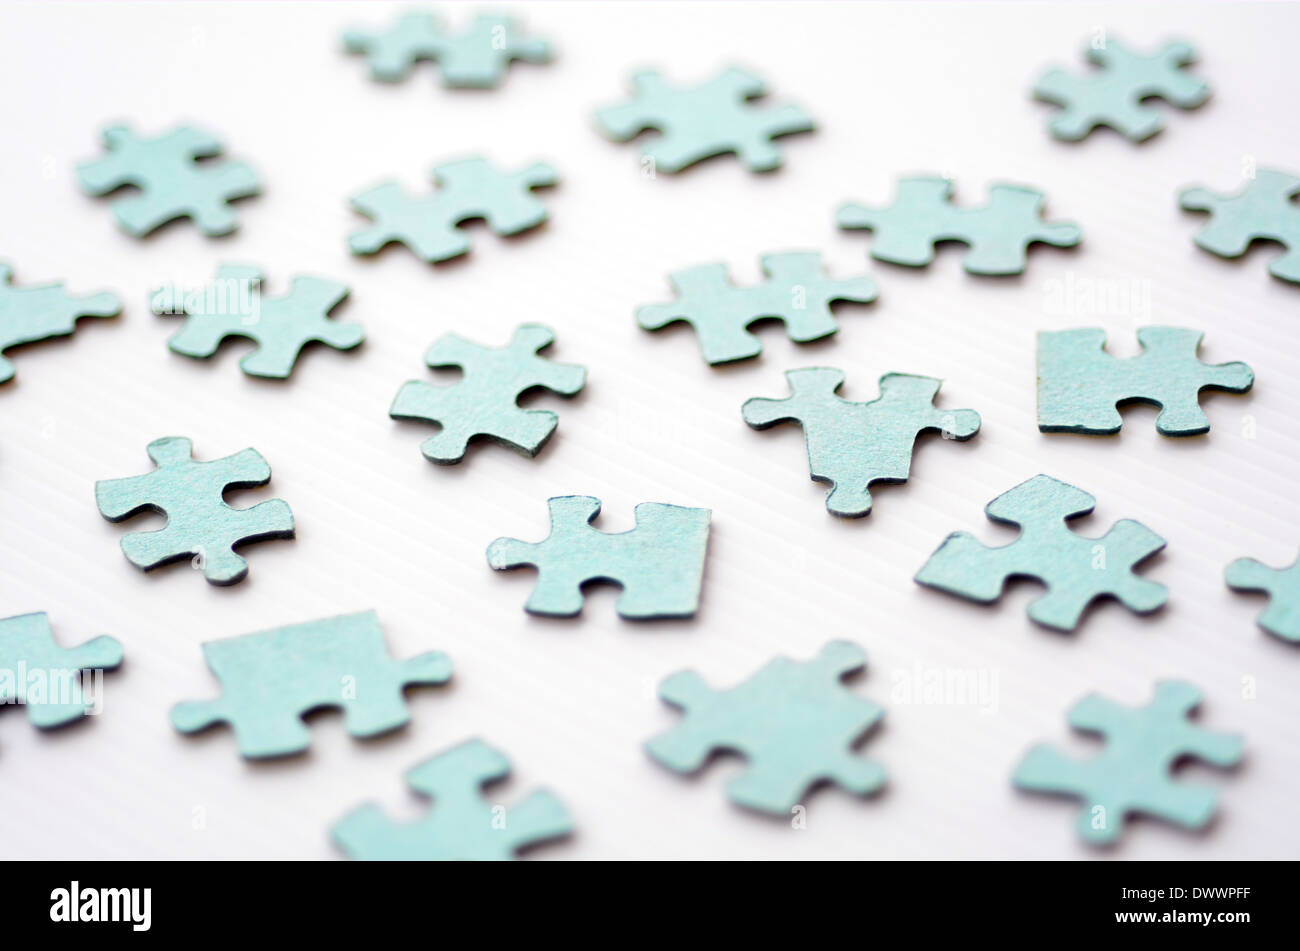 Scattered puzzle pieces toy isolated on white background. Concept photo of disharmony, change, no-order and chaos. - Stock Image